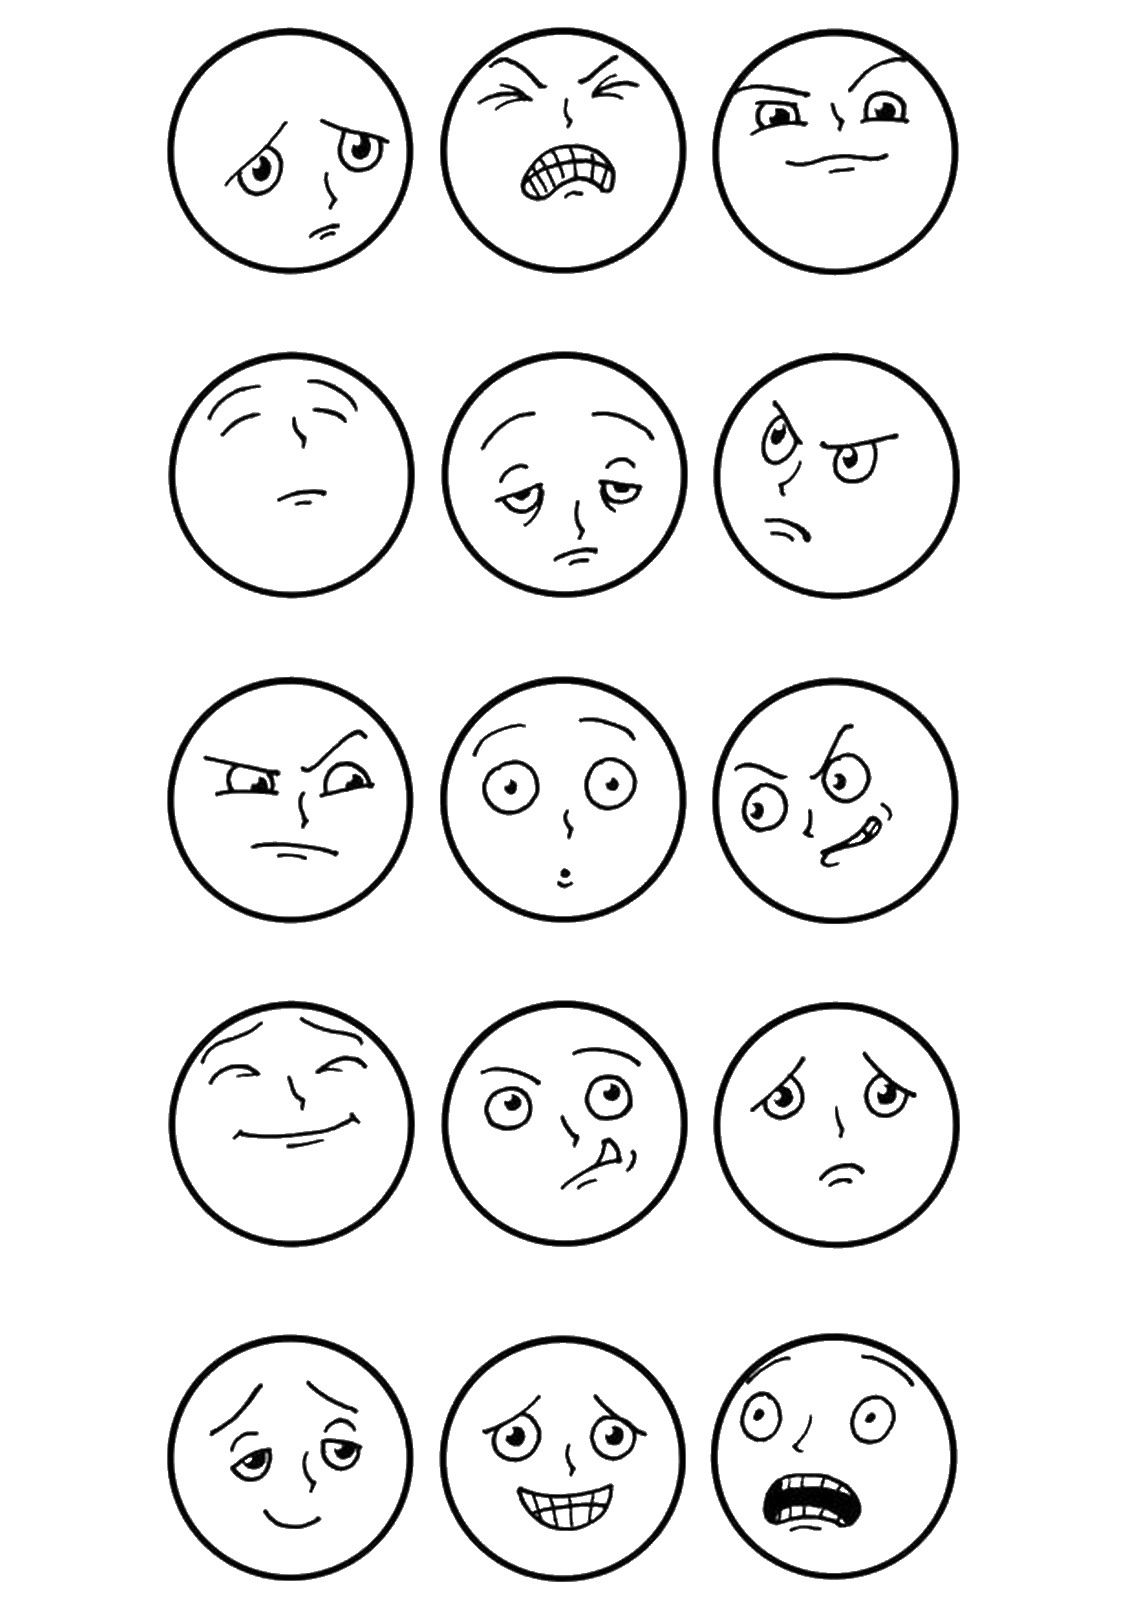 Top 19 Free Printable Emotions Coloring Pages Online  Emotion